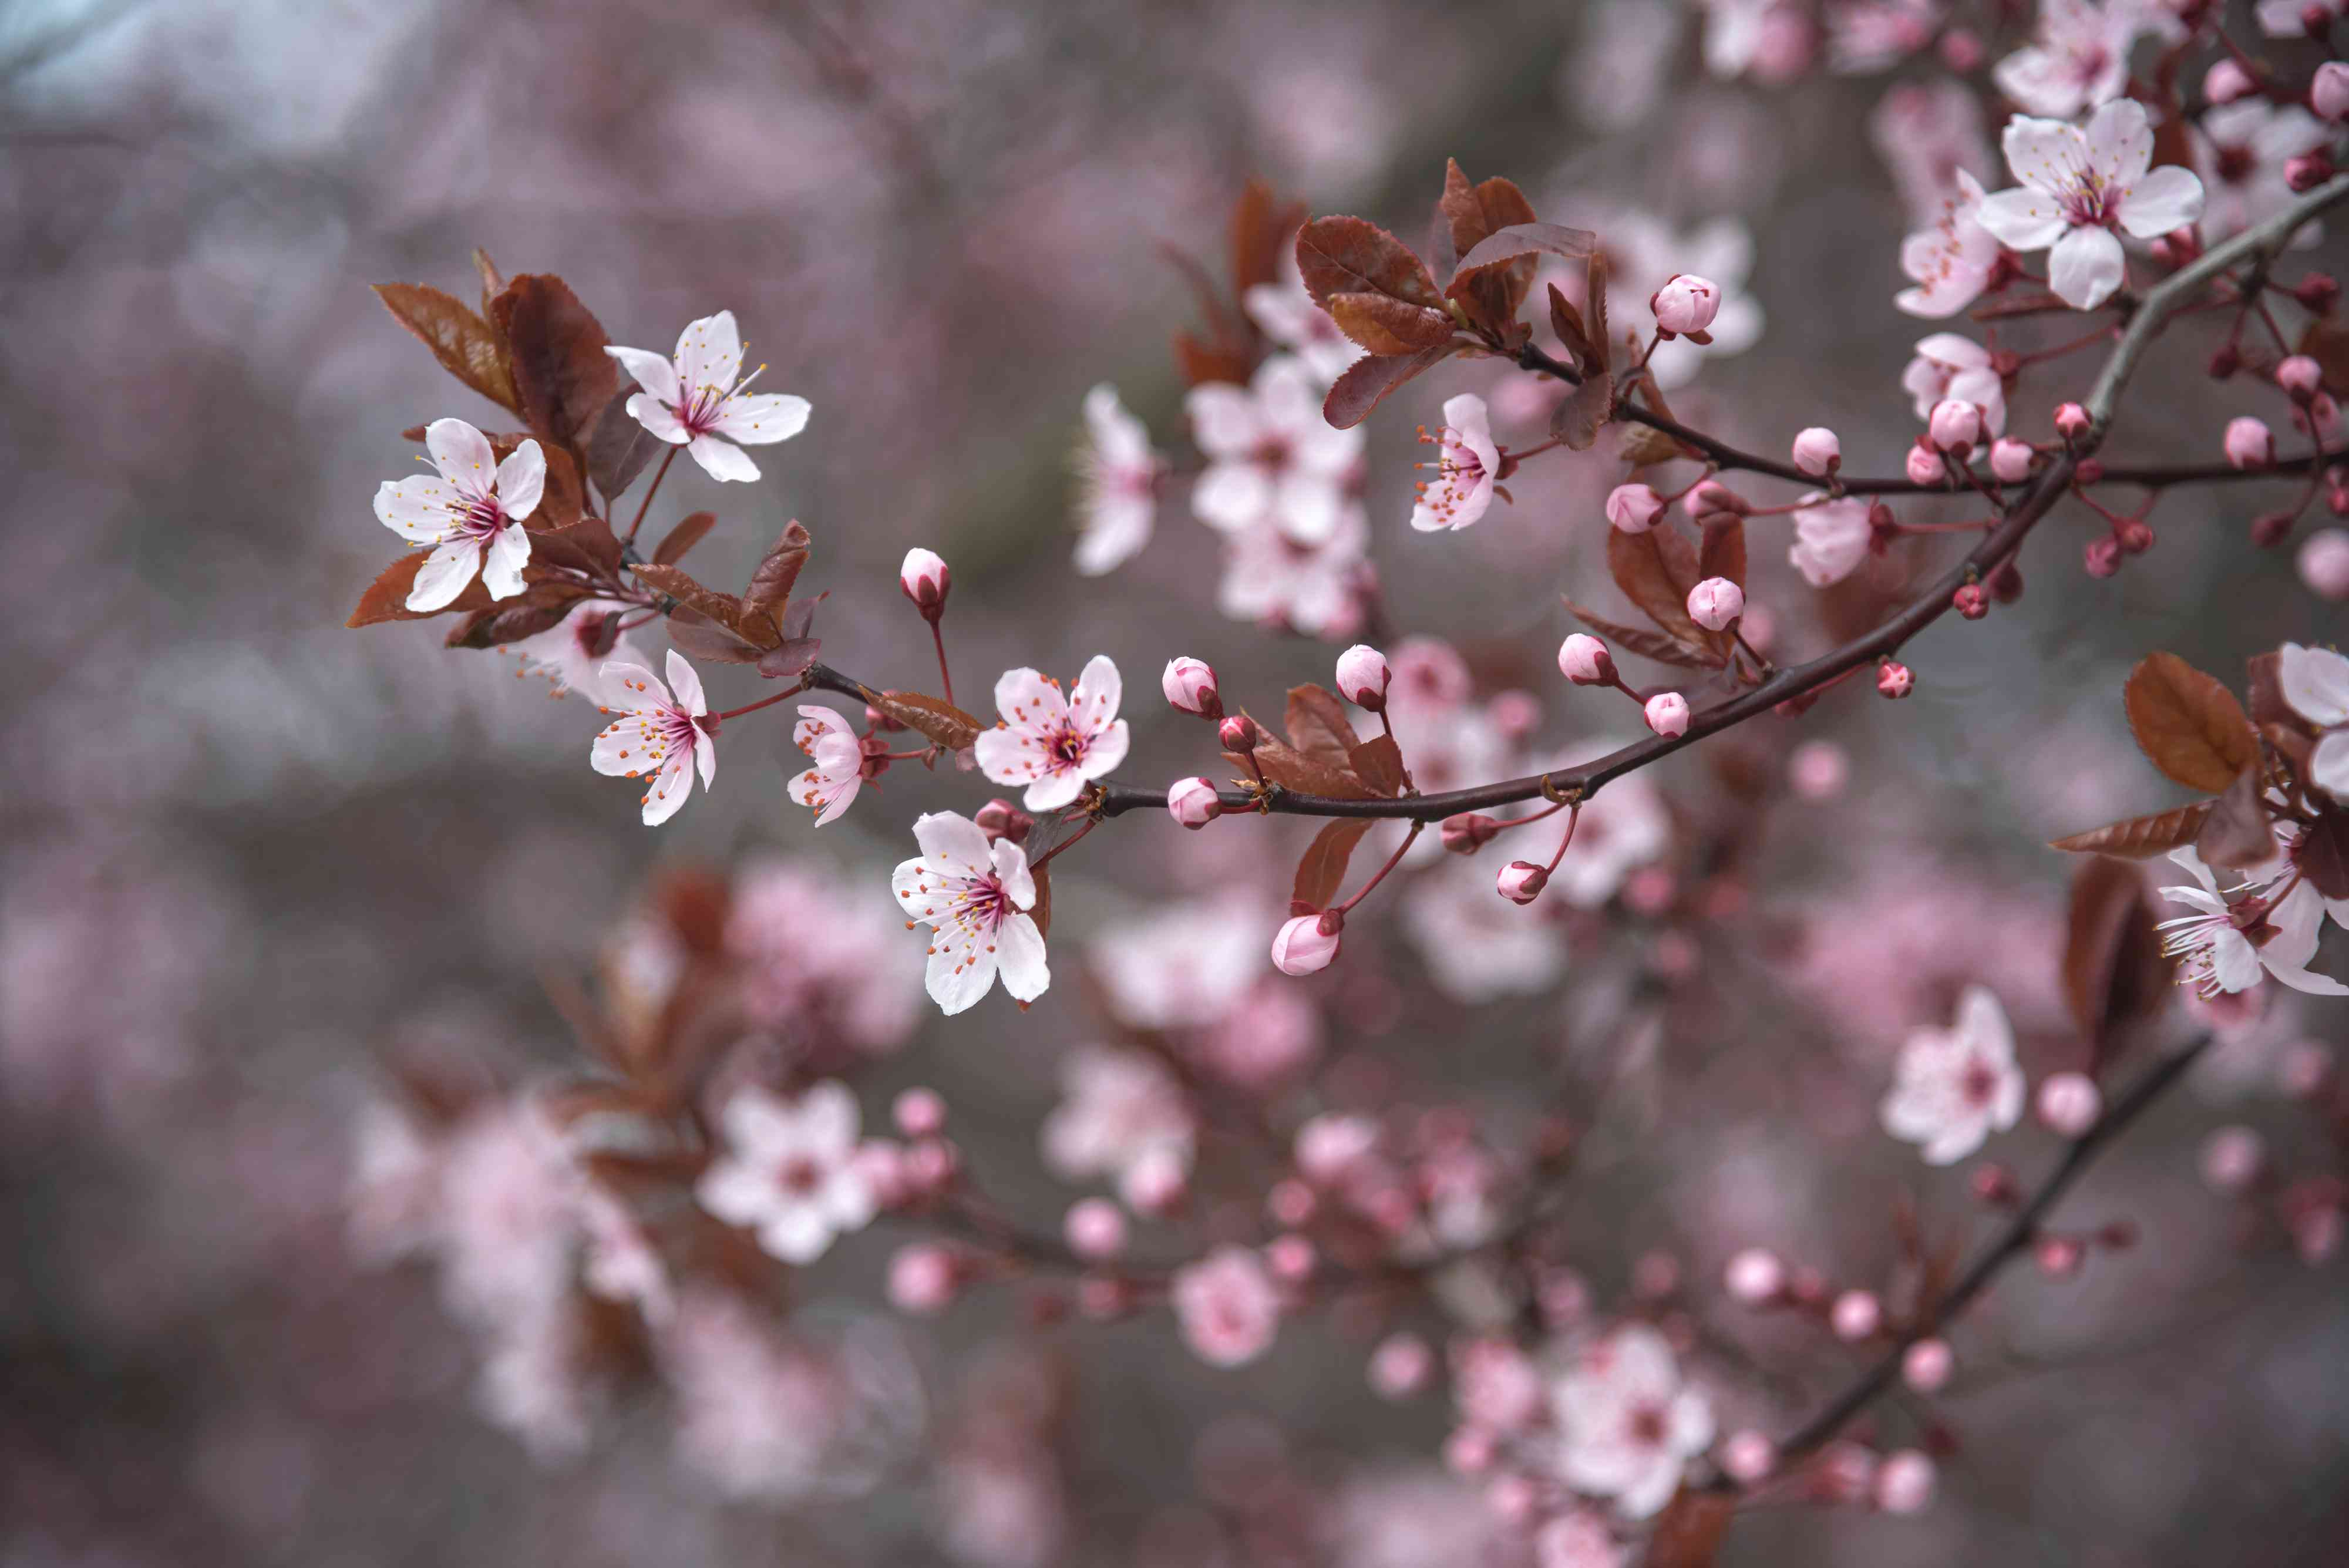 Purple leaf plum tree branches with small white and pink flowers with buds and brown leaves closeup